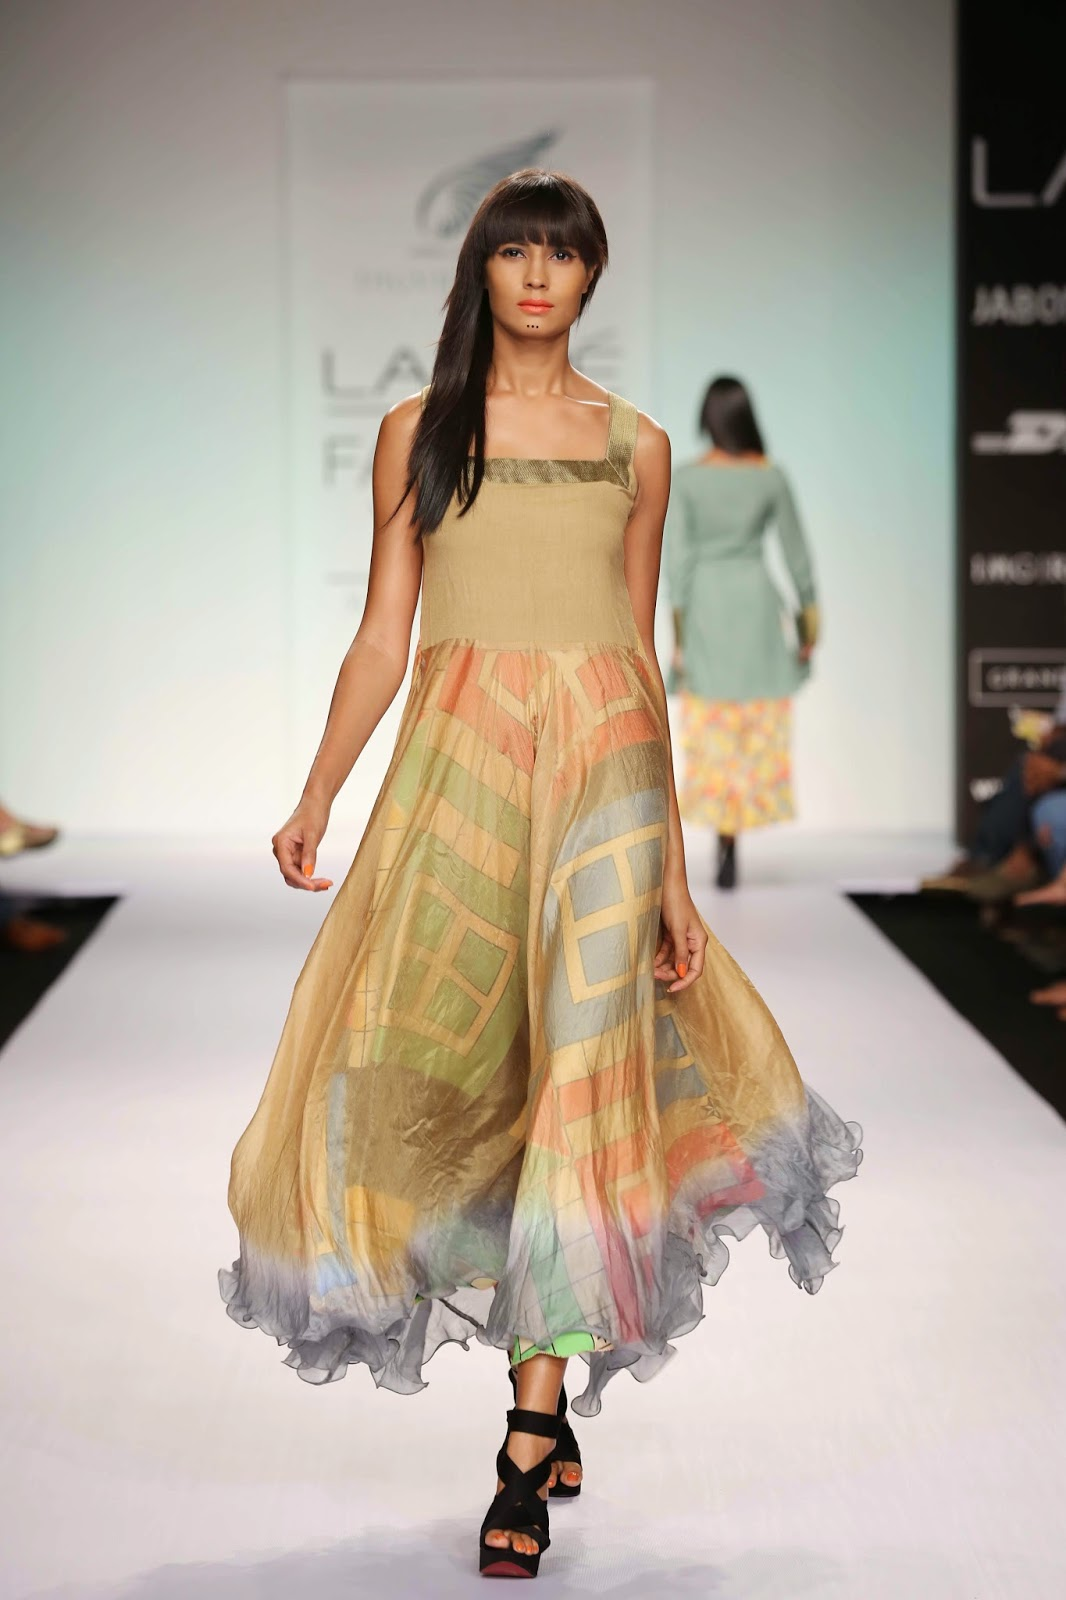 """Ludo and Ladders"" was the interesting title of Digvijay Singh's men's and women's collection for Lakmé Fashion Week Summer/Resort 2014."